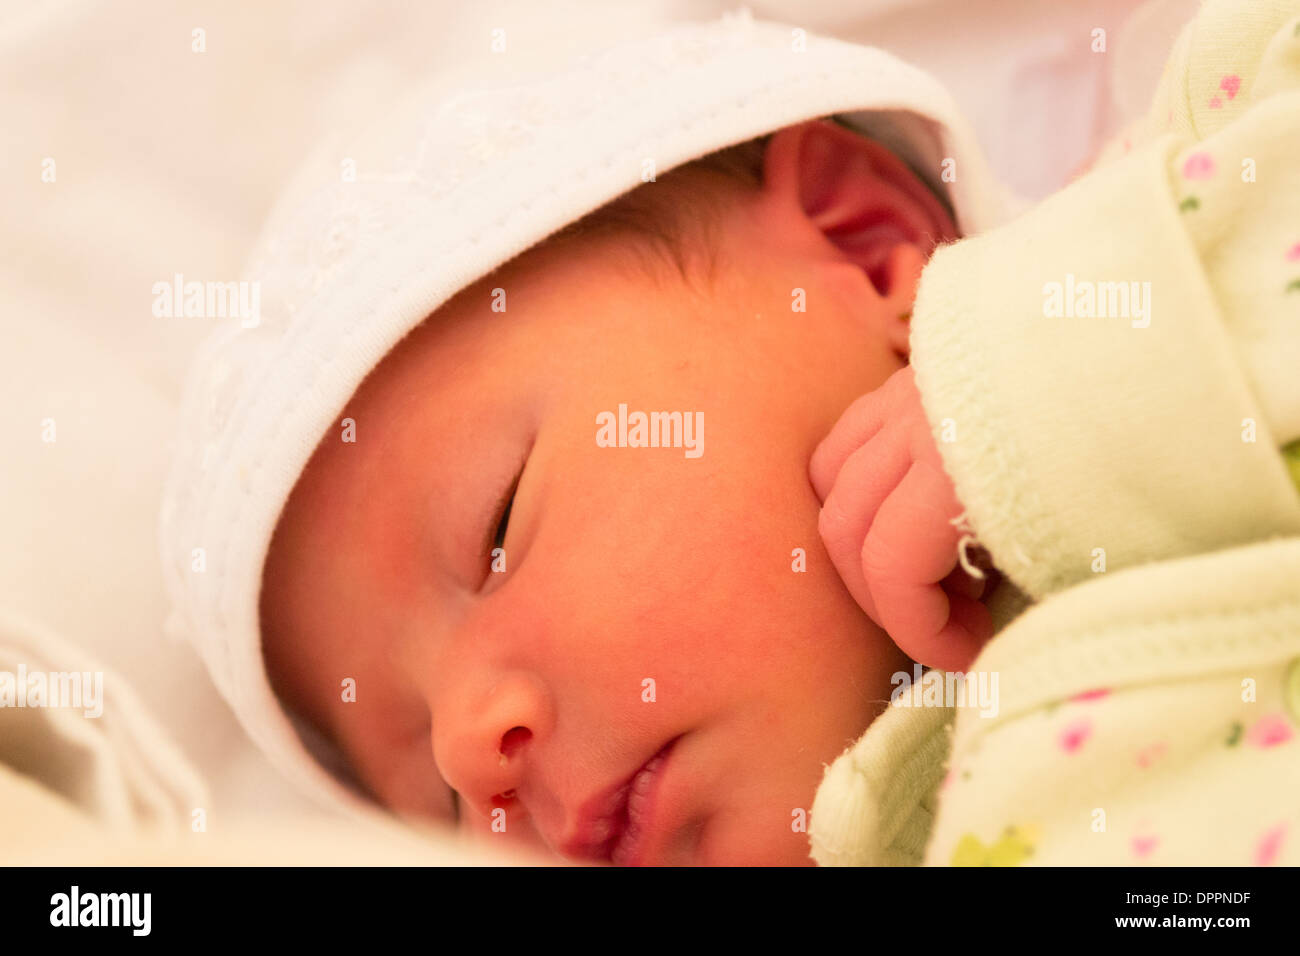 Baby girl sleeping, close-up on her face - Stock Image